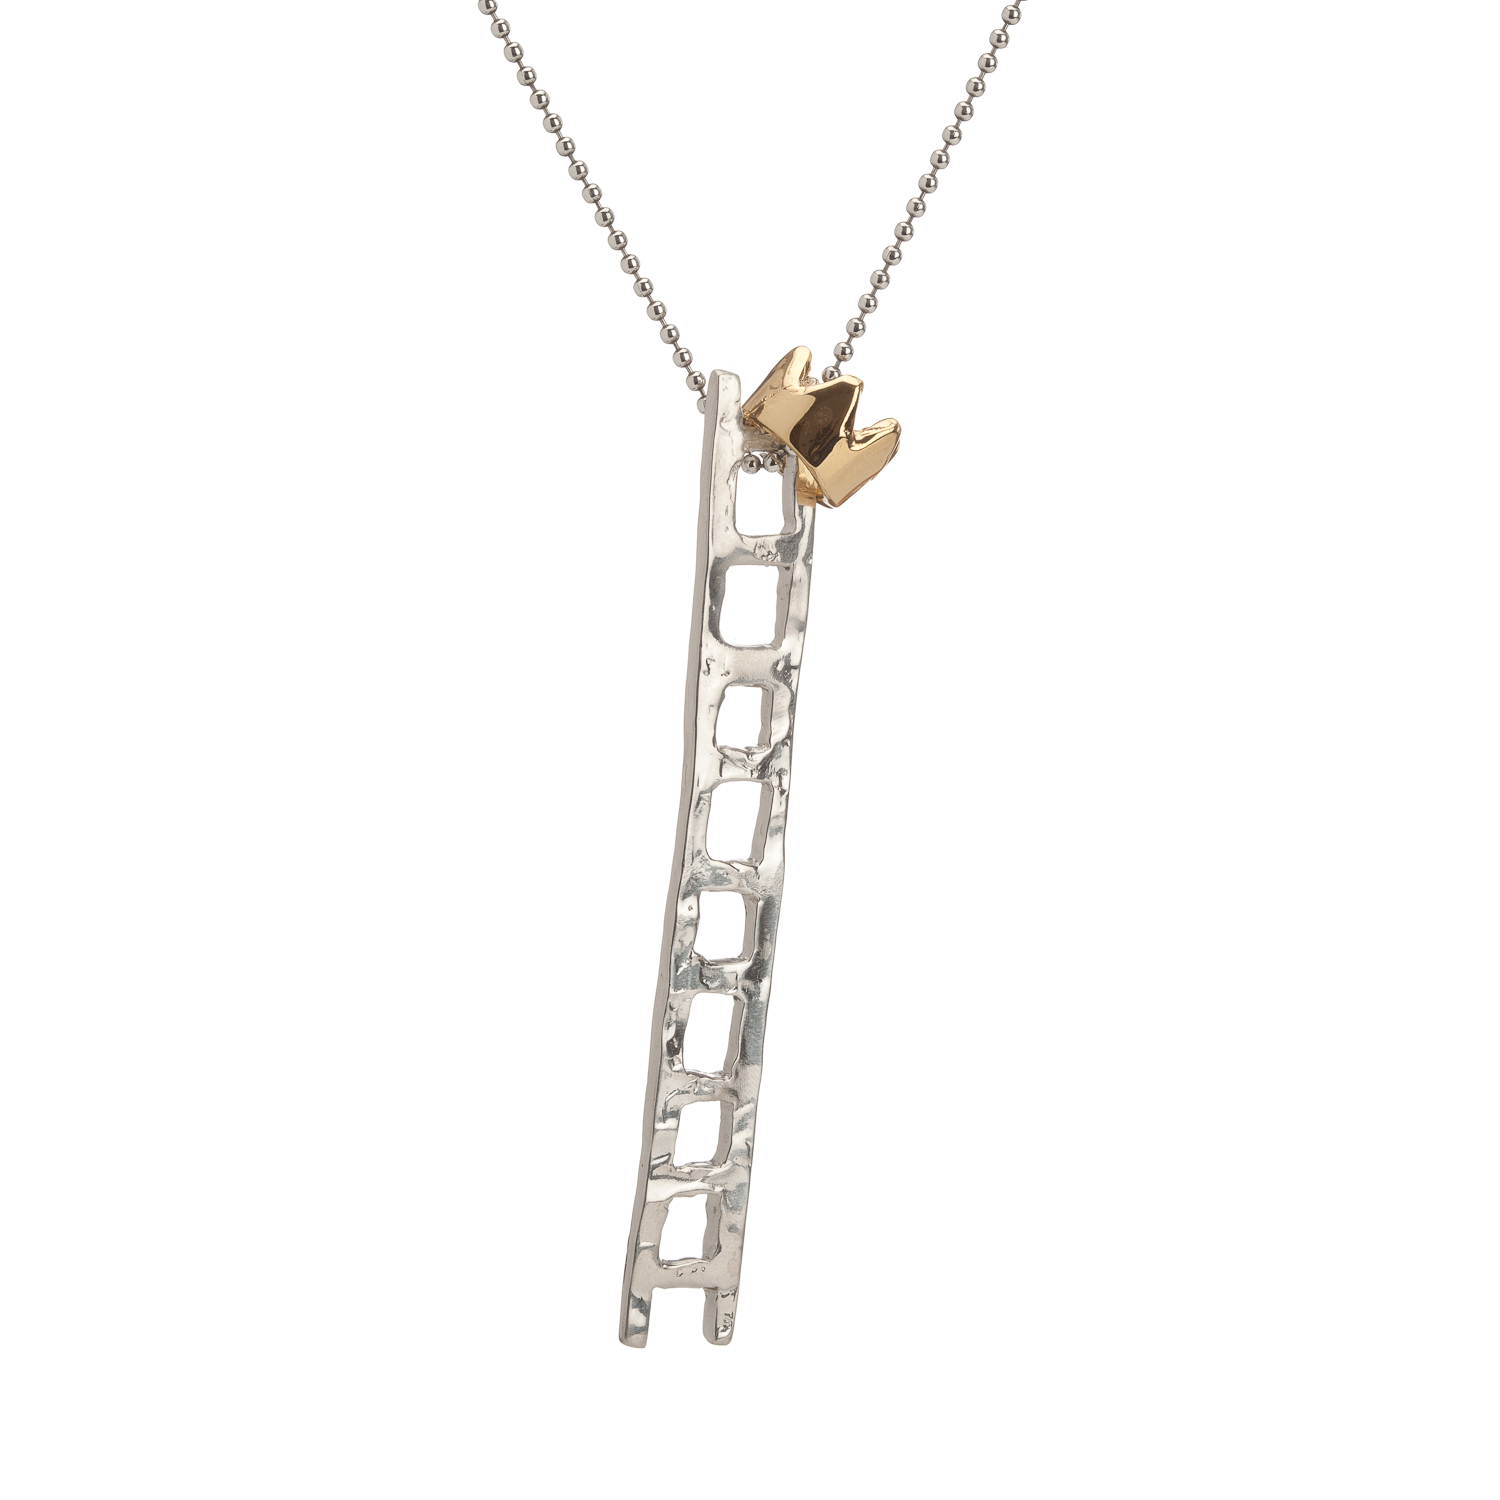 Long ladder and crown | sterling silver and 18k gold